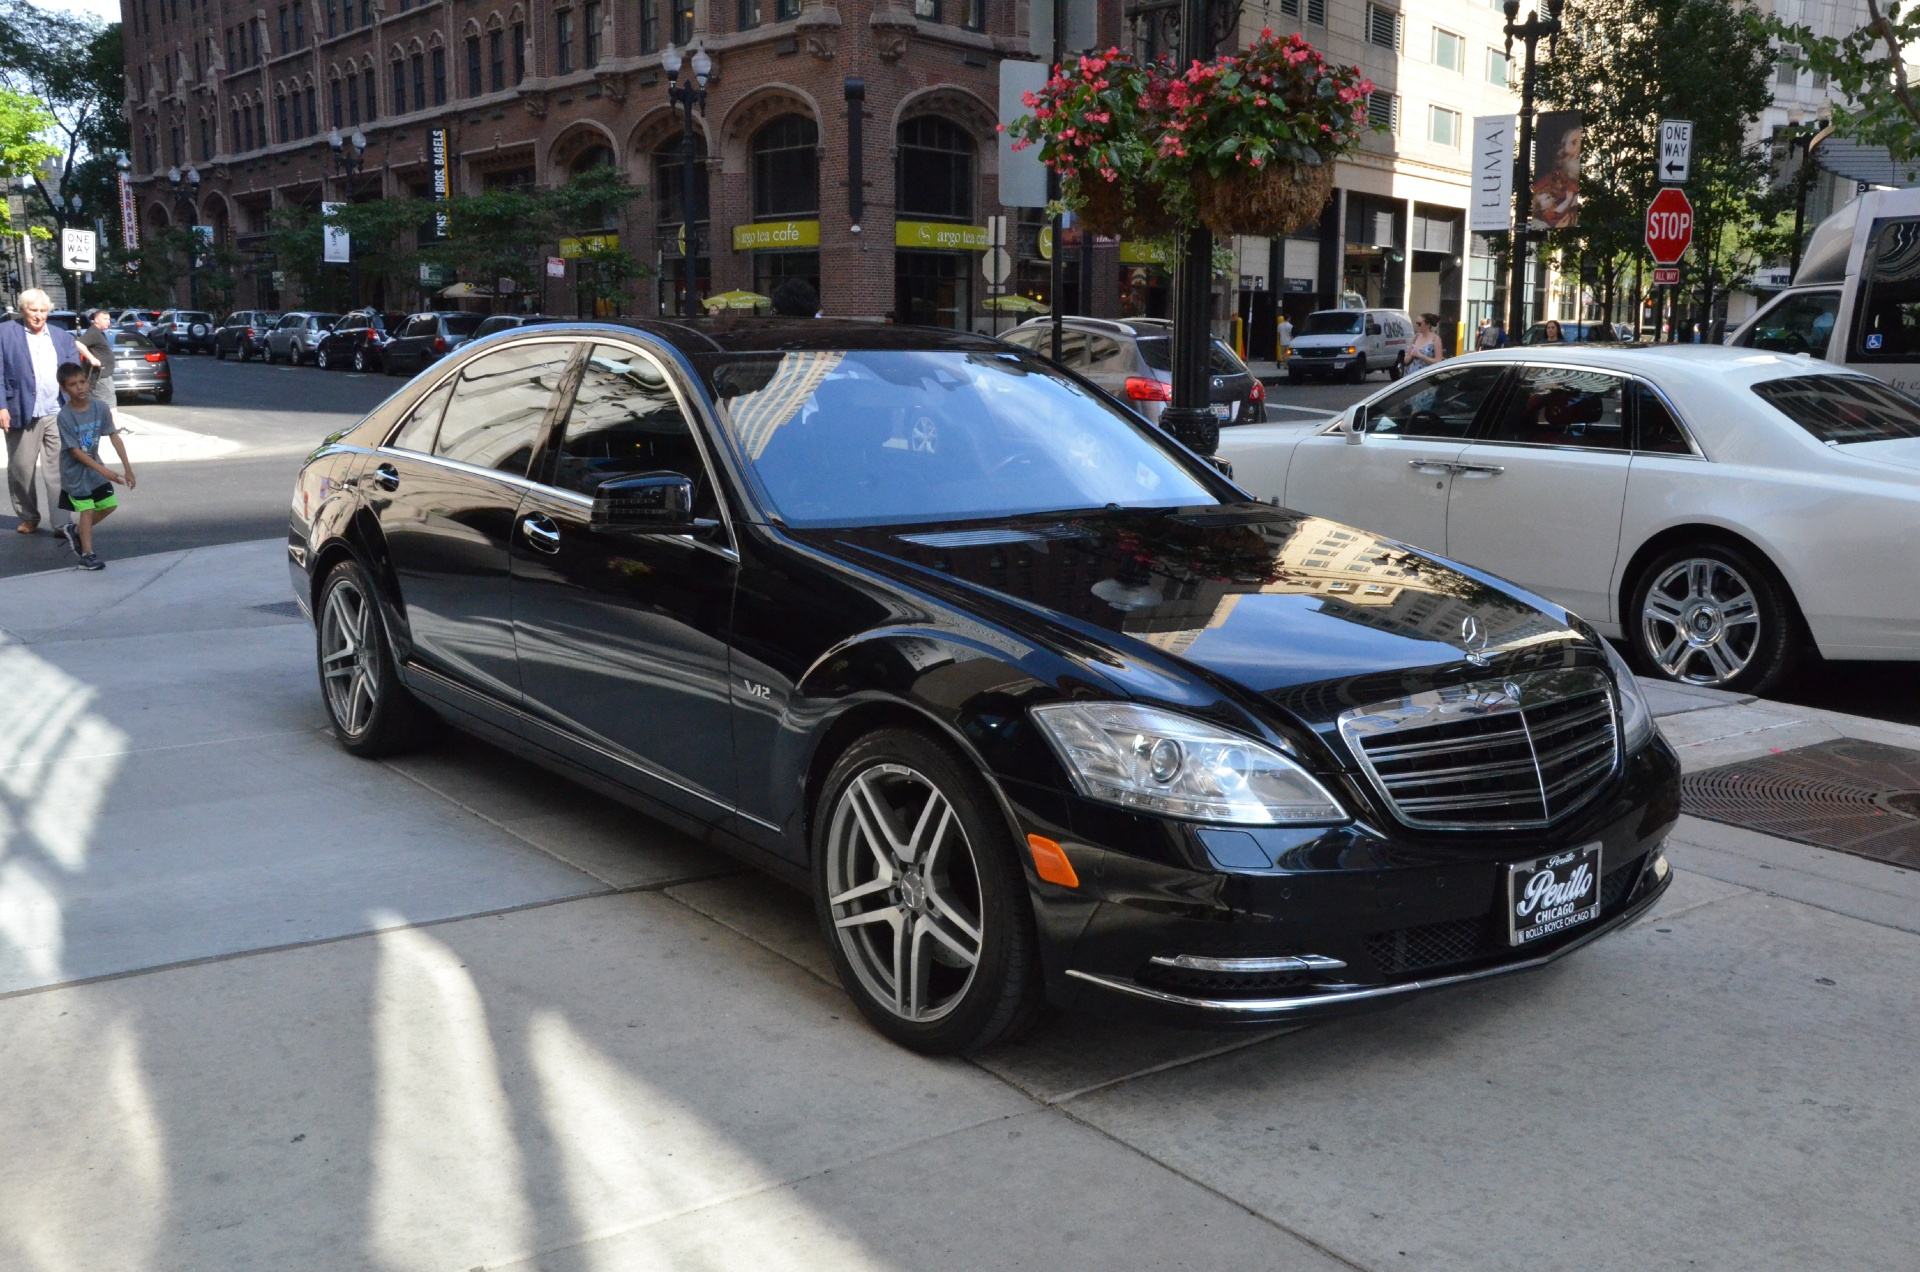 2012 mercedes benz s class s600 stock r216b for sale. Black Bedroom Furniture Sets. Home Design Ideas